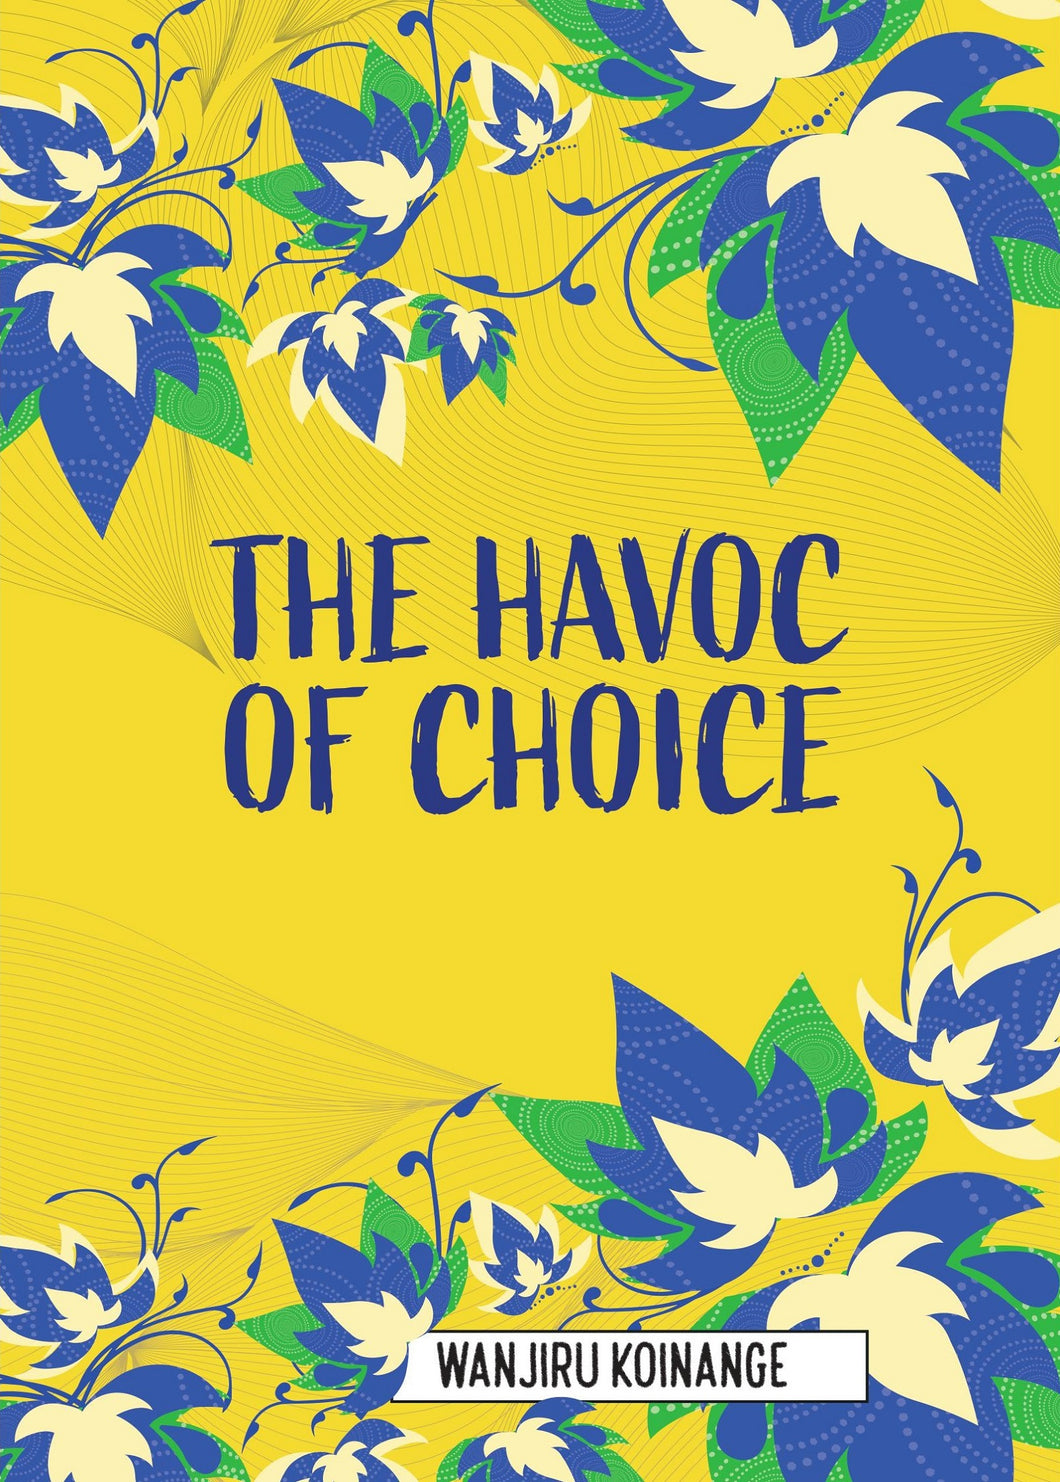 The Havoc of Choice by Wanjiru Koinange